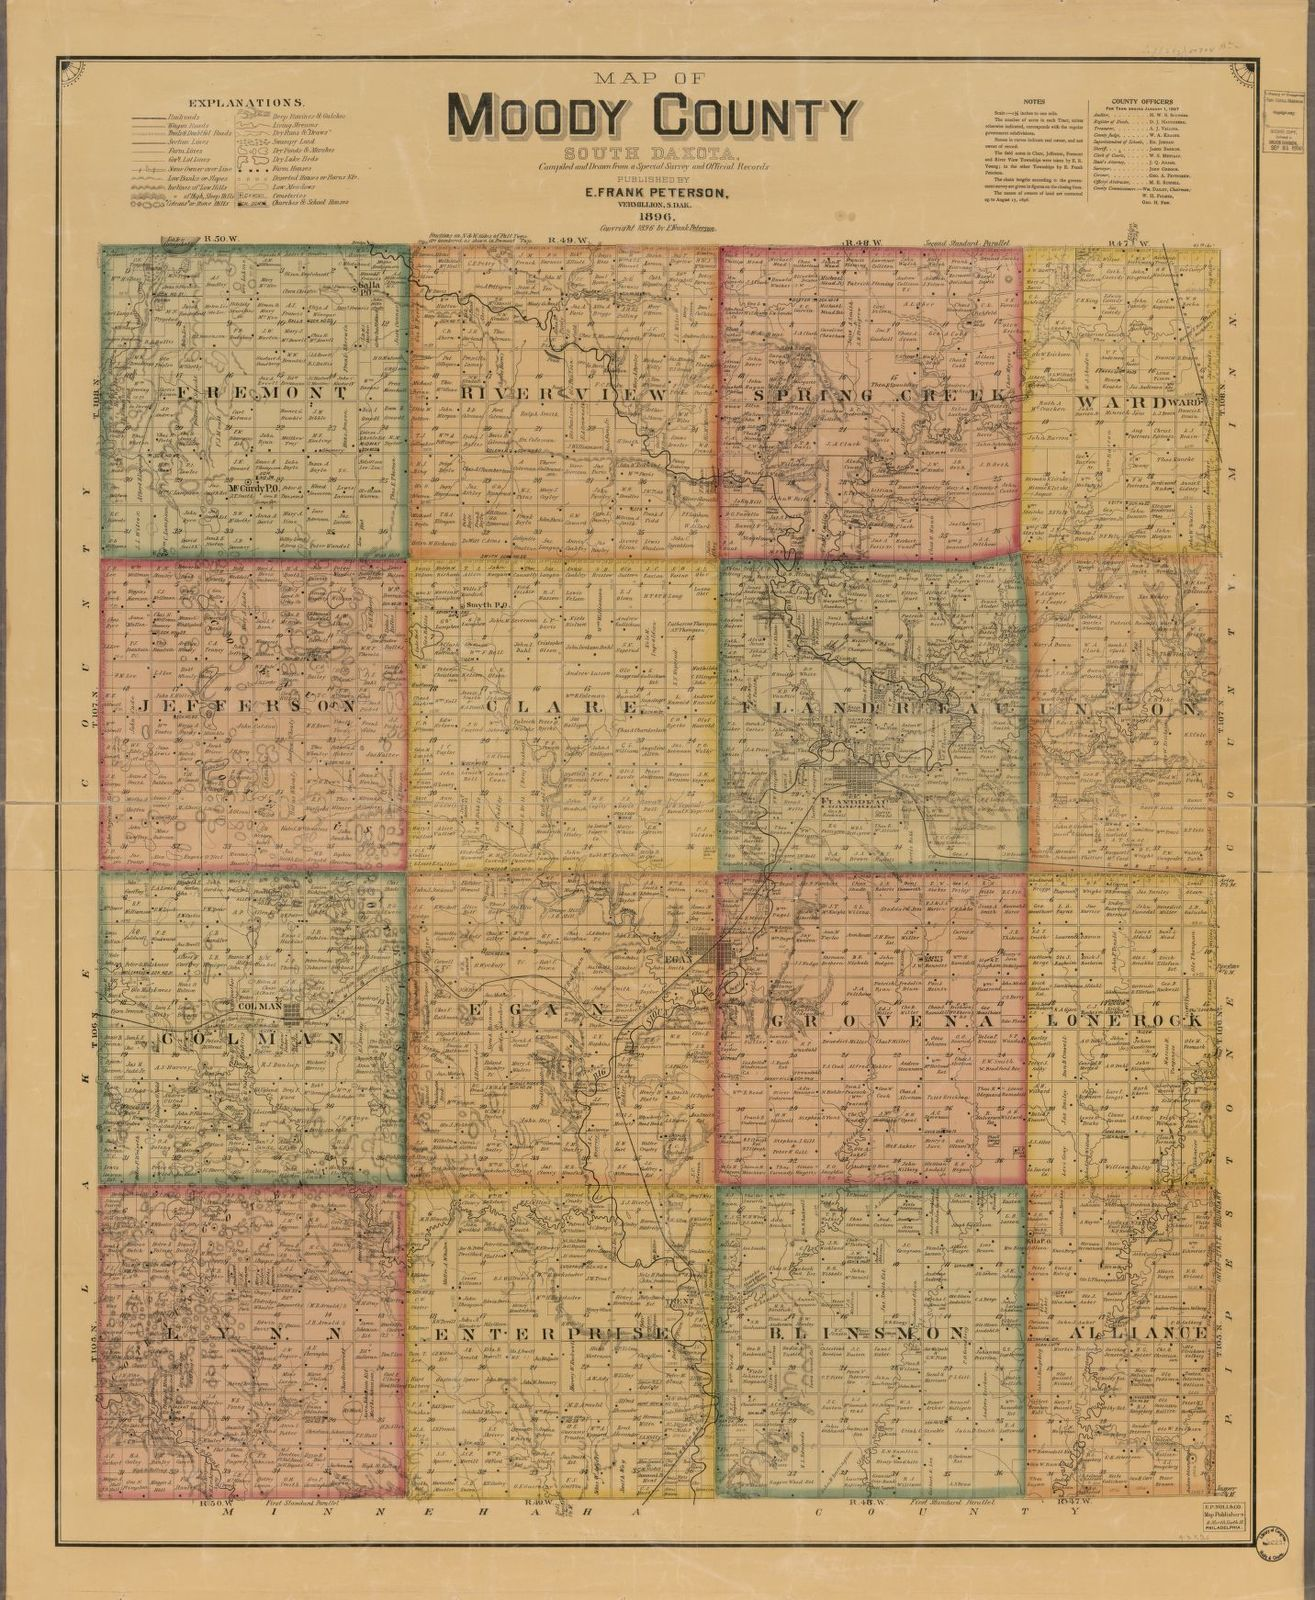 Map of Moody County, South Dakota : compiled and drawn from a special survey and official records.